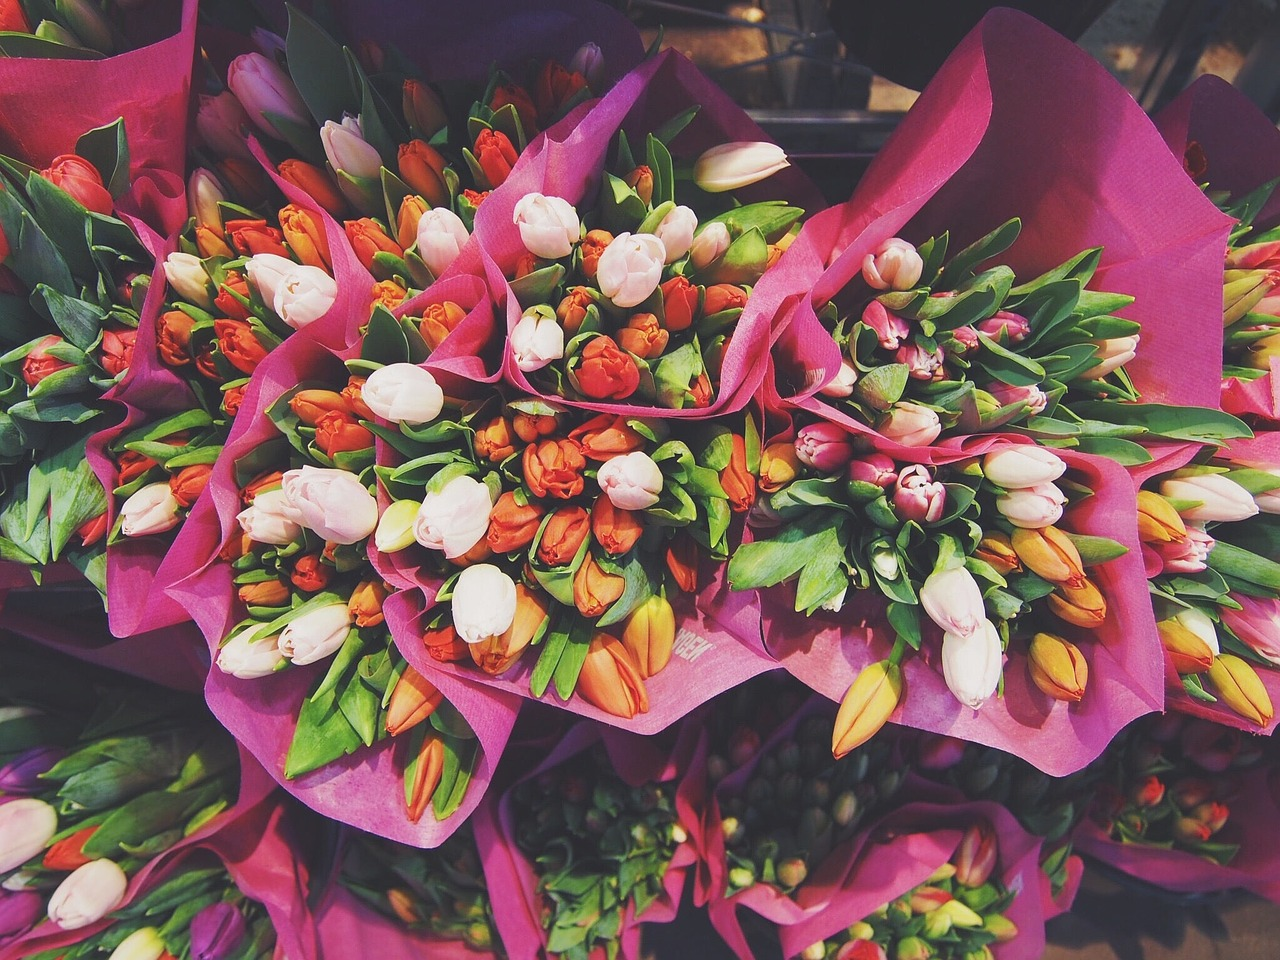 Bunches of brightly colored tulips.